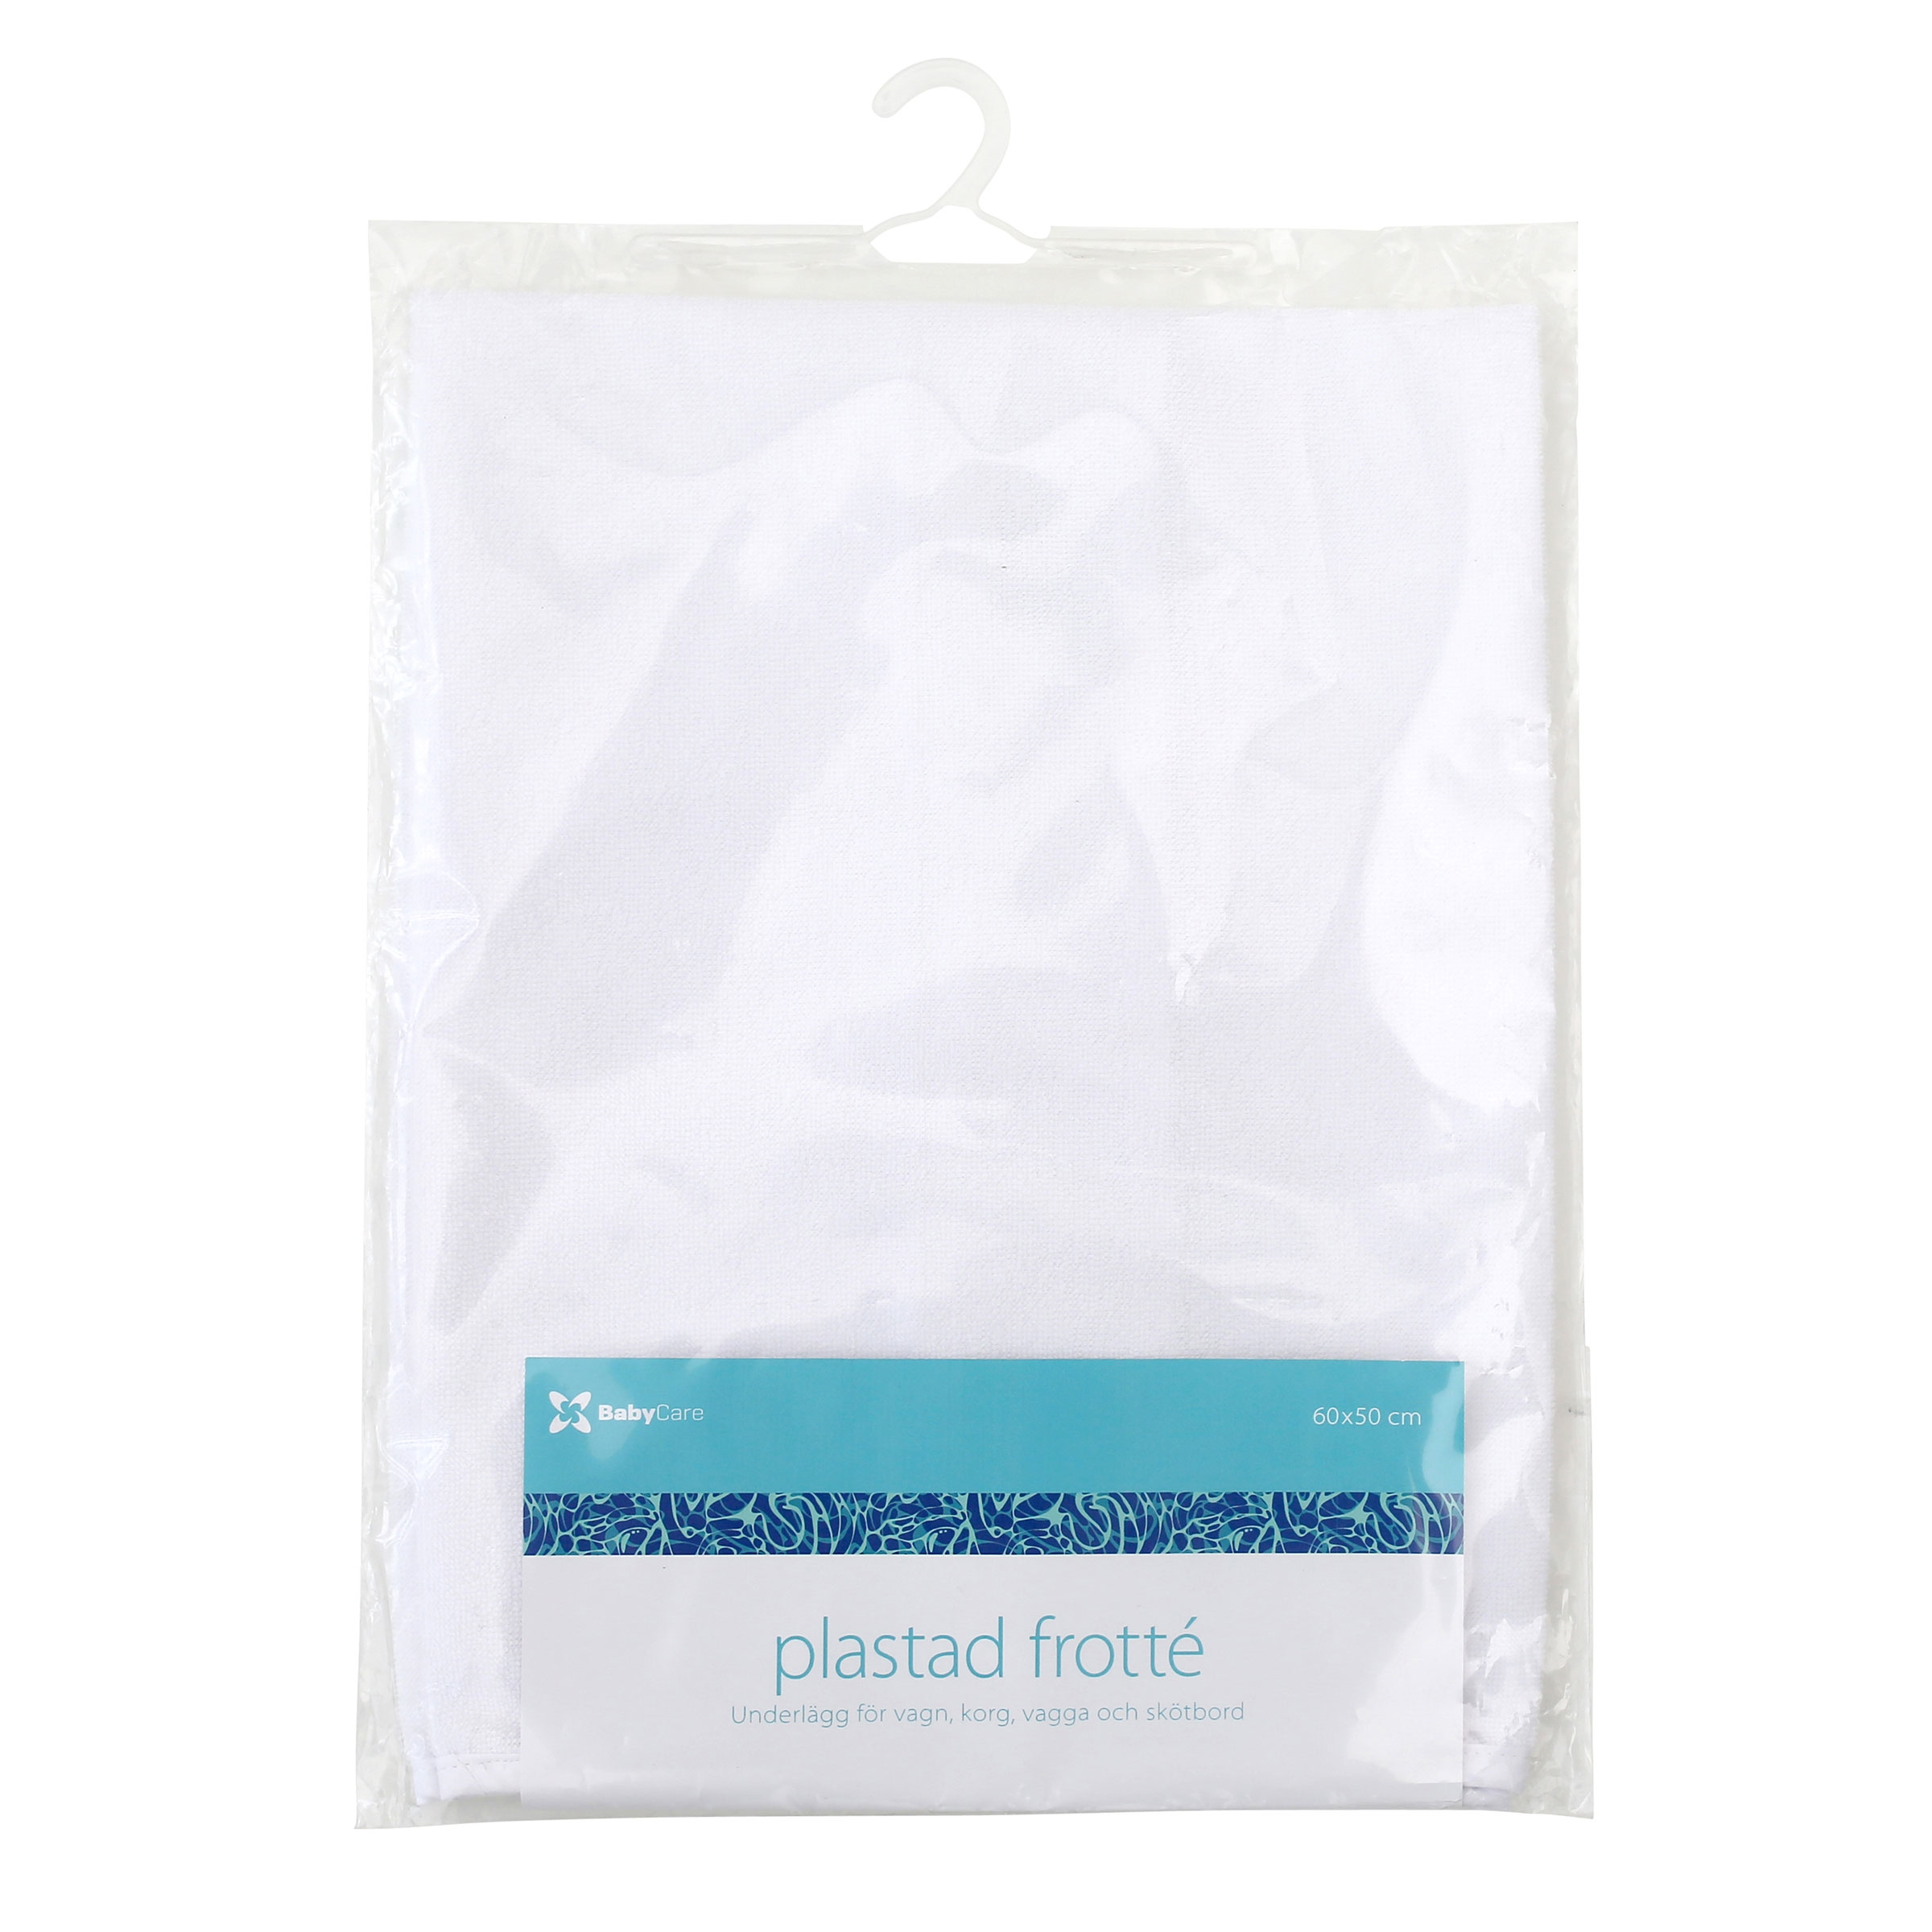 Babycare Plastad Frotte 60X50